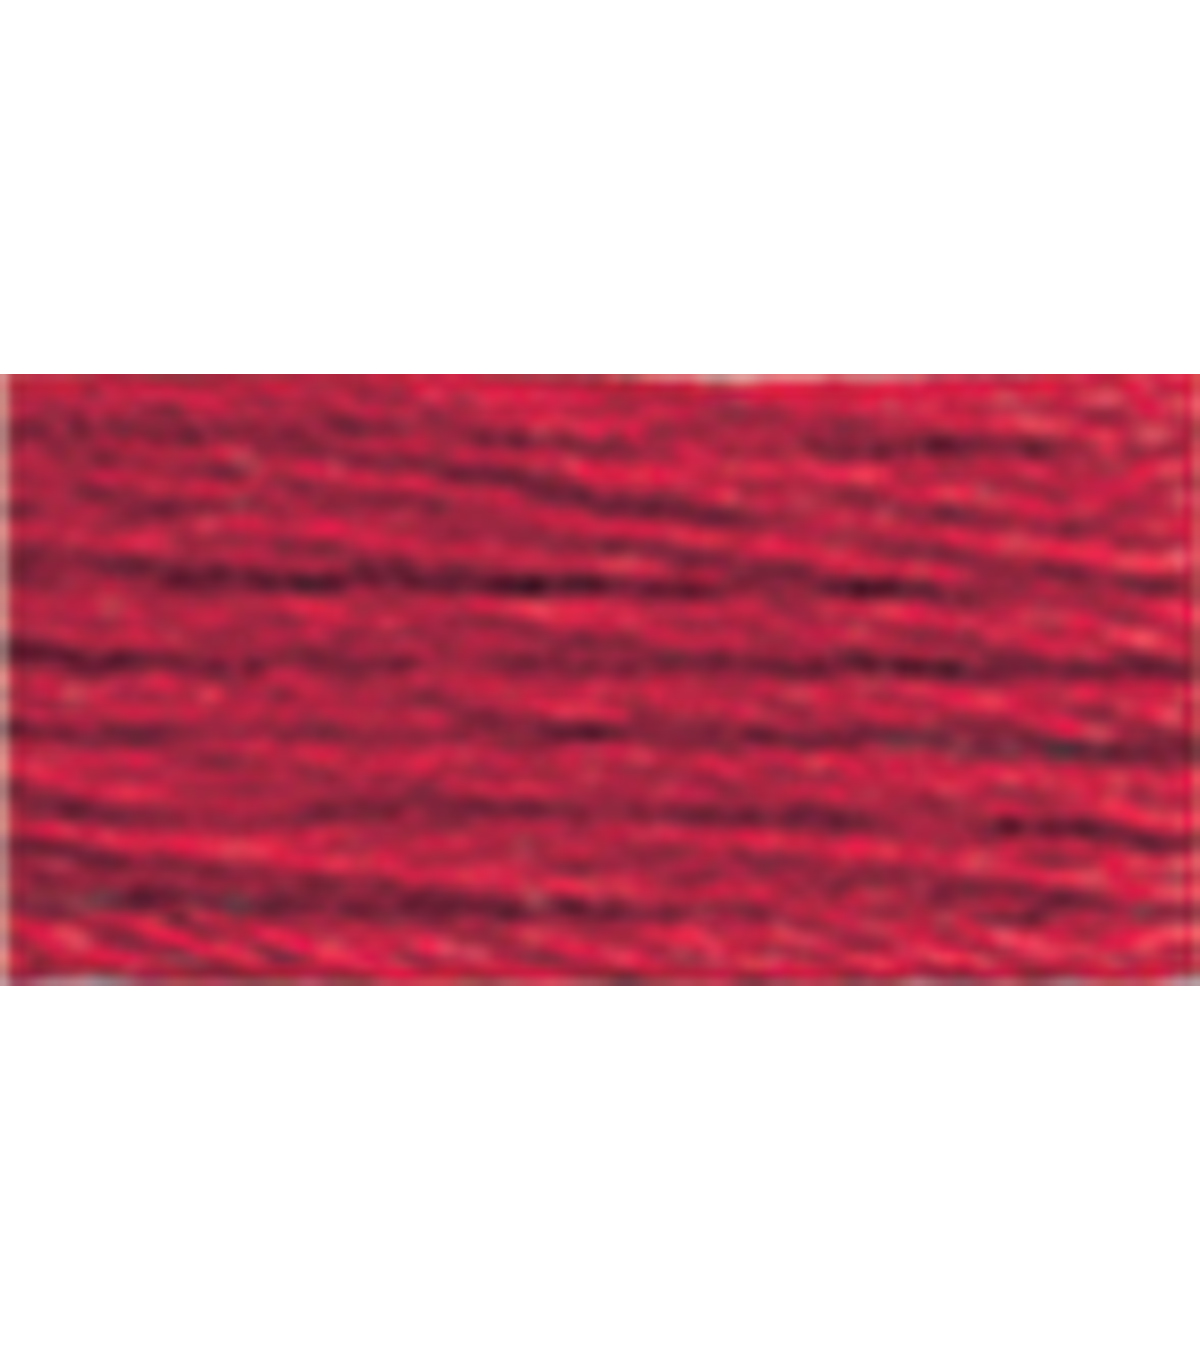 Anchor 6-Strand Embroidery Floss 8.75yd-Carmine Red